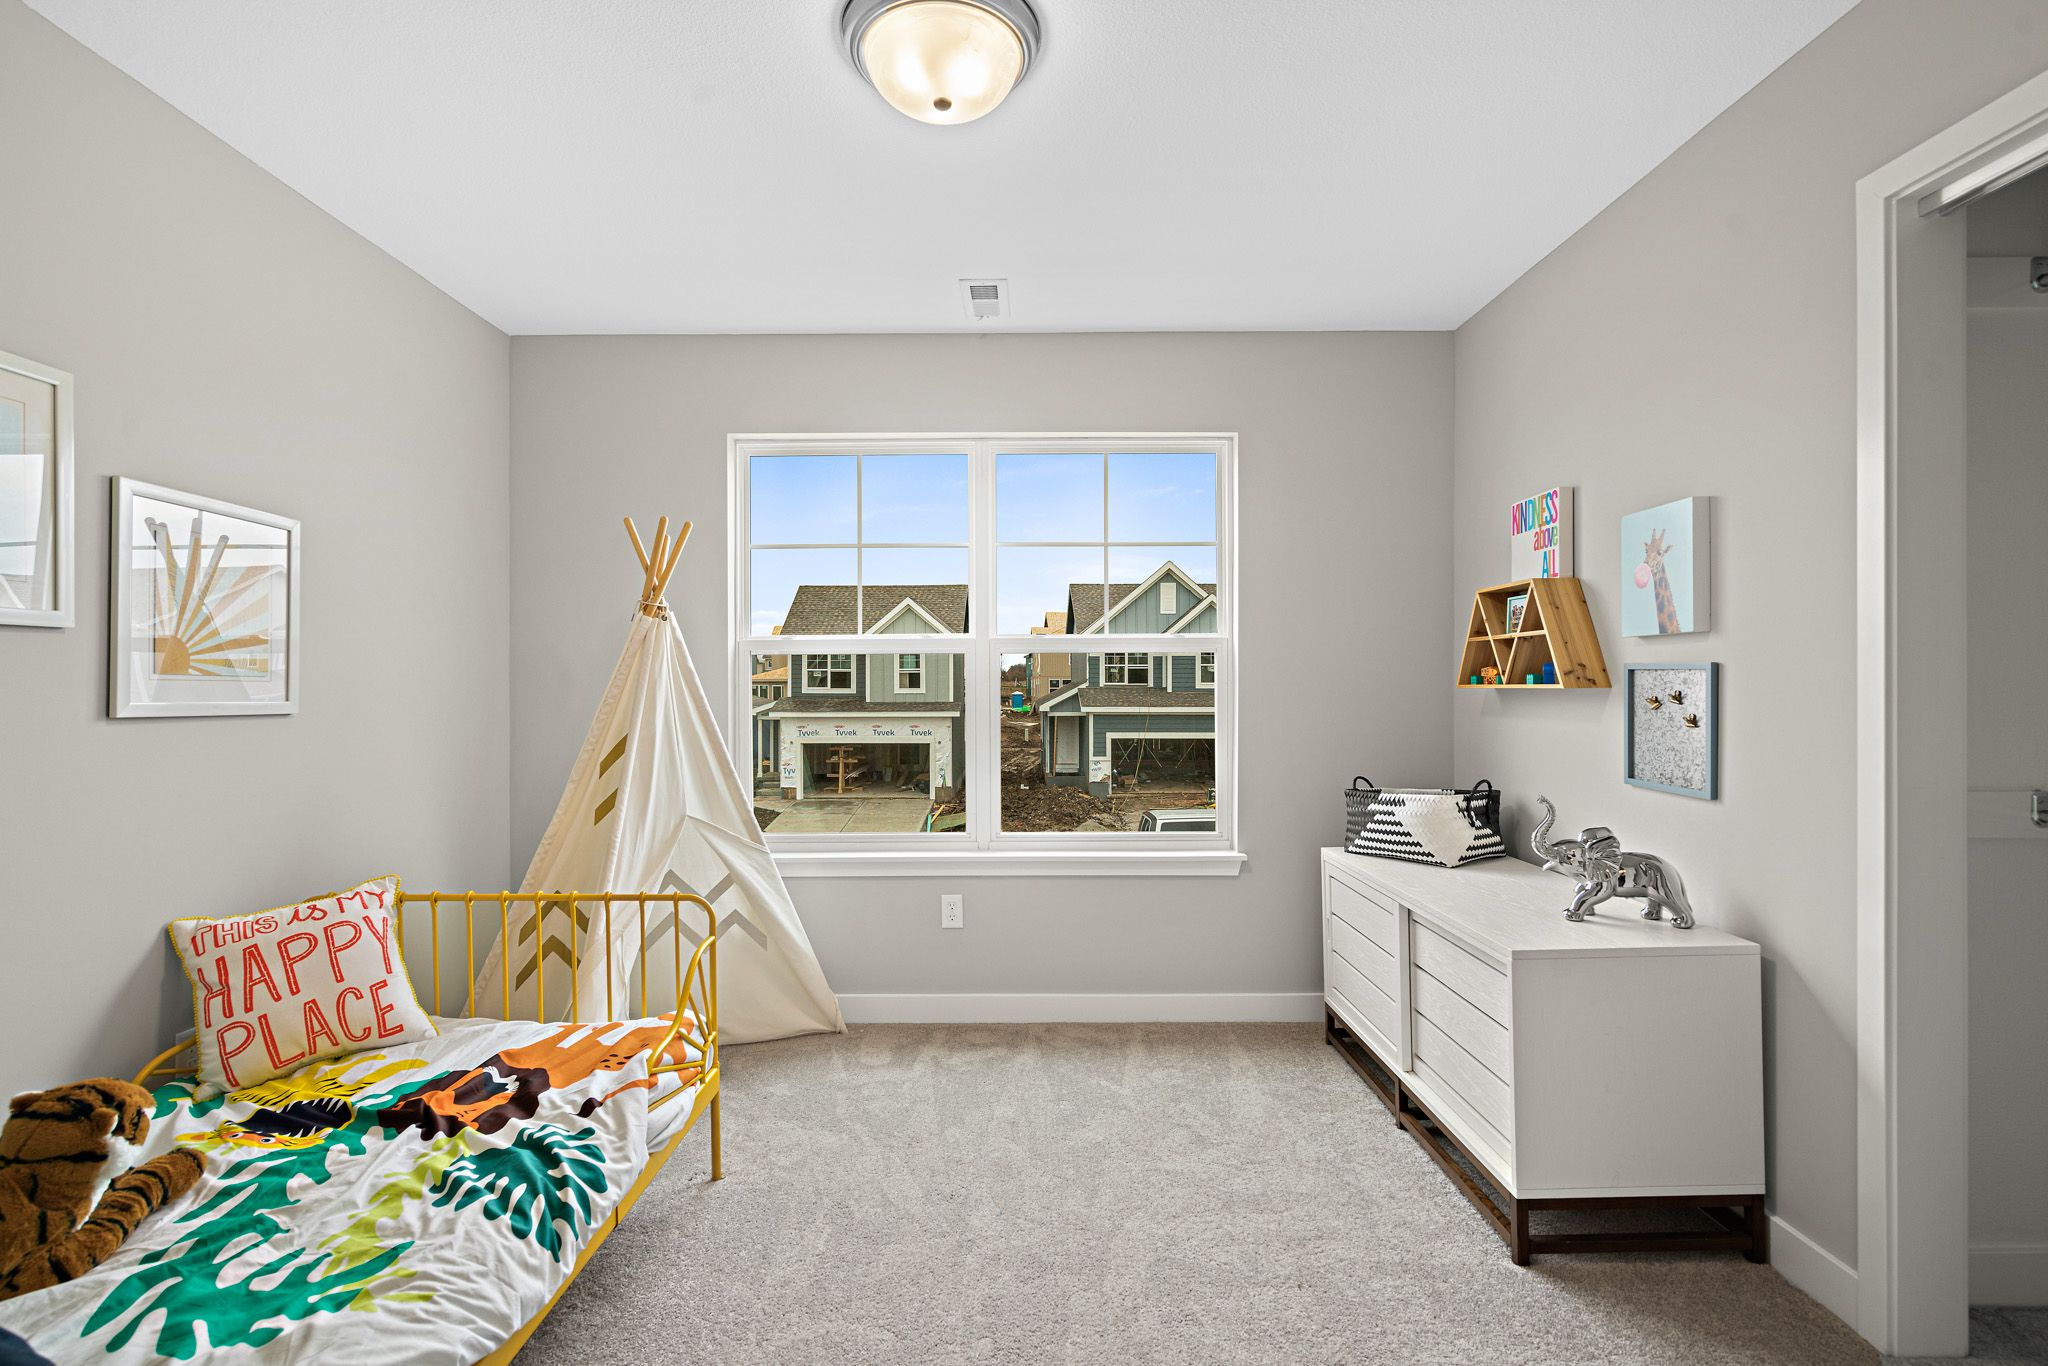 Bedroom featured in the sienna By clover & hive in Des Moines, IA